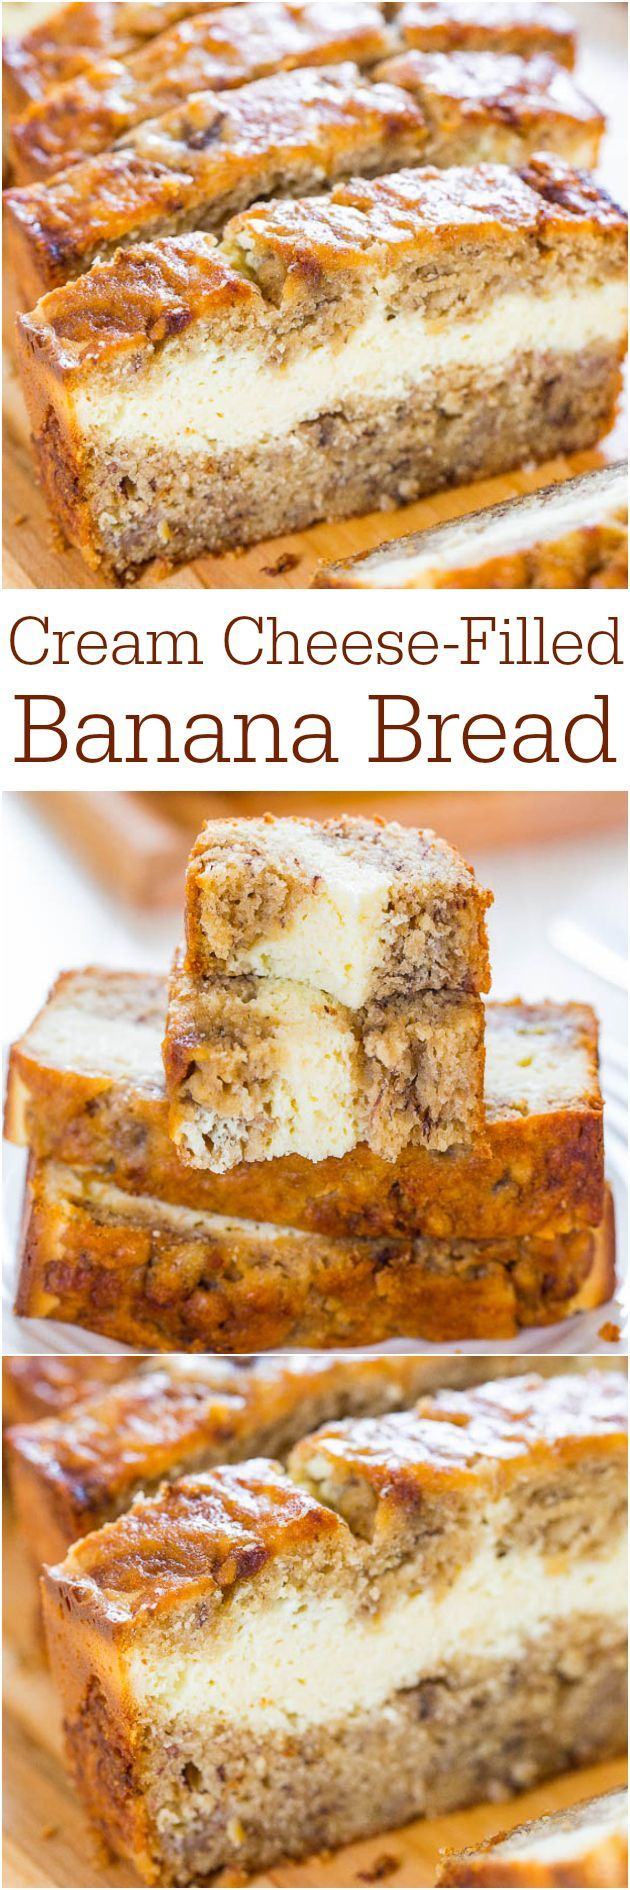 Cream Cheese-Filled Banana Bread - Banana bread that's like having cheesecake baked in! Soft, fluffy, easy and tastes ahhhh-mazing! #cookies #fall #fallbaking #bakingforfall #thanksgiving #thanksgivingfood #cooking #recipes #dinnerideas www.gmichaelsalon.com